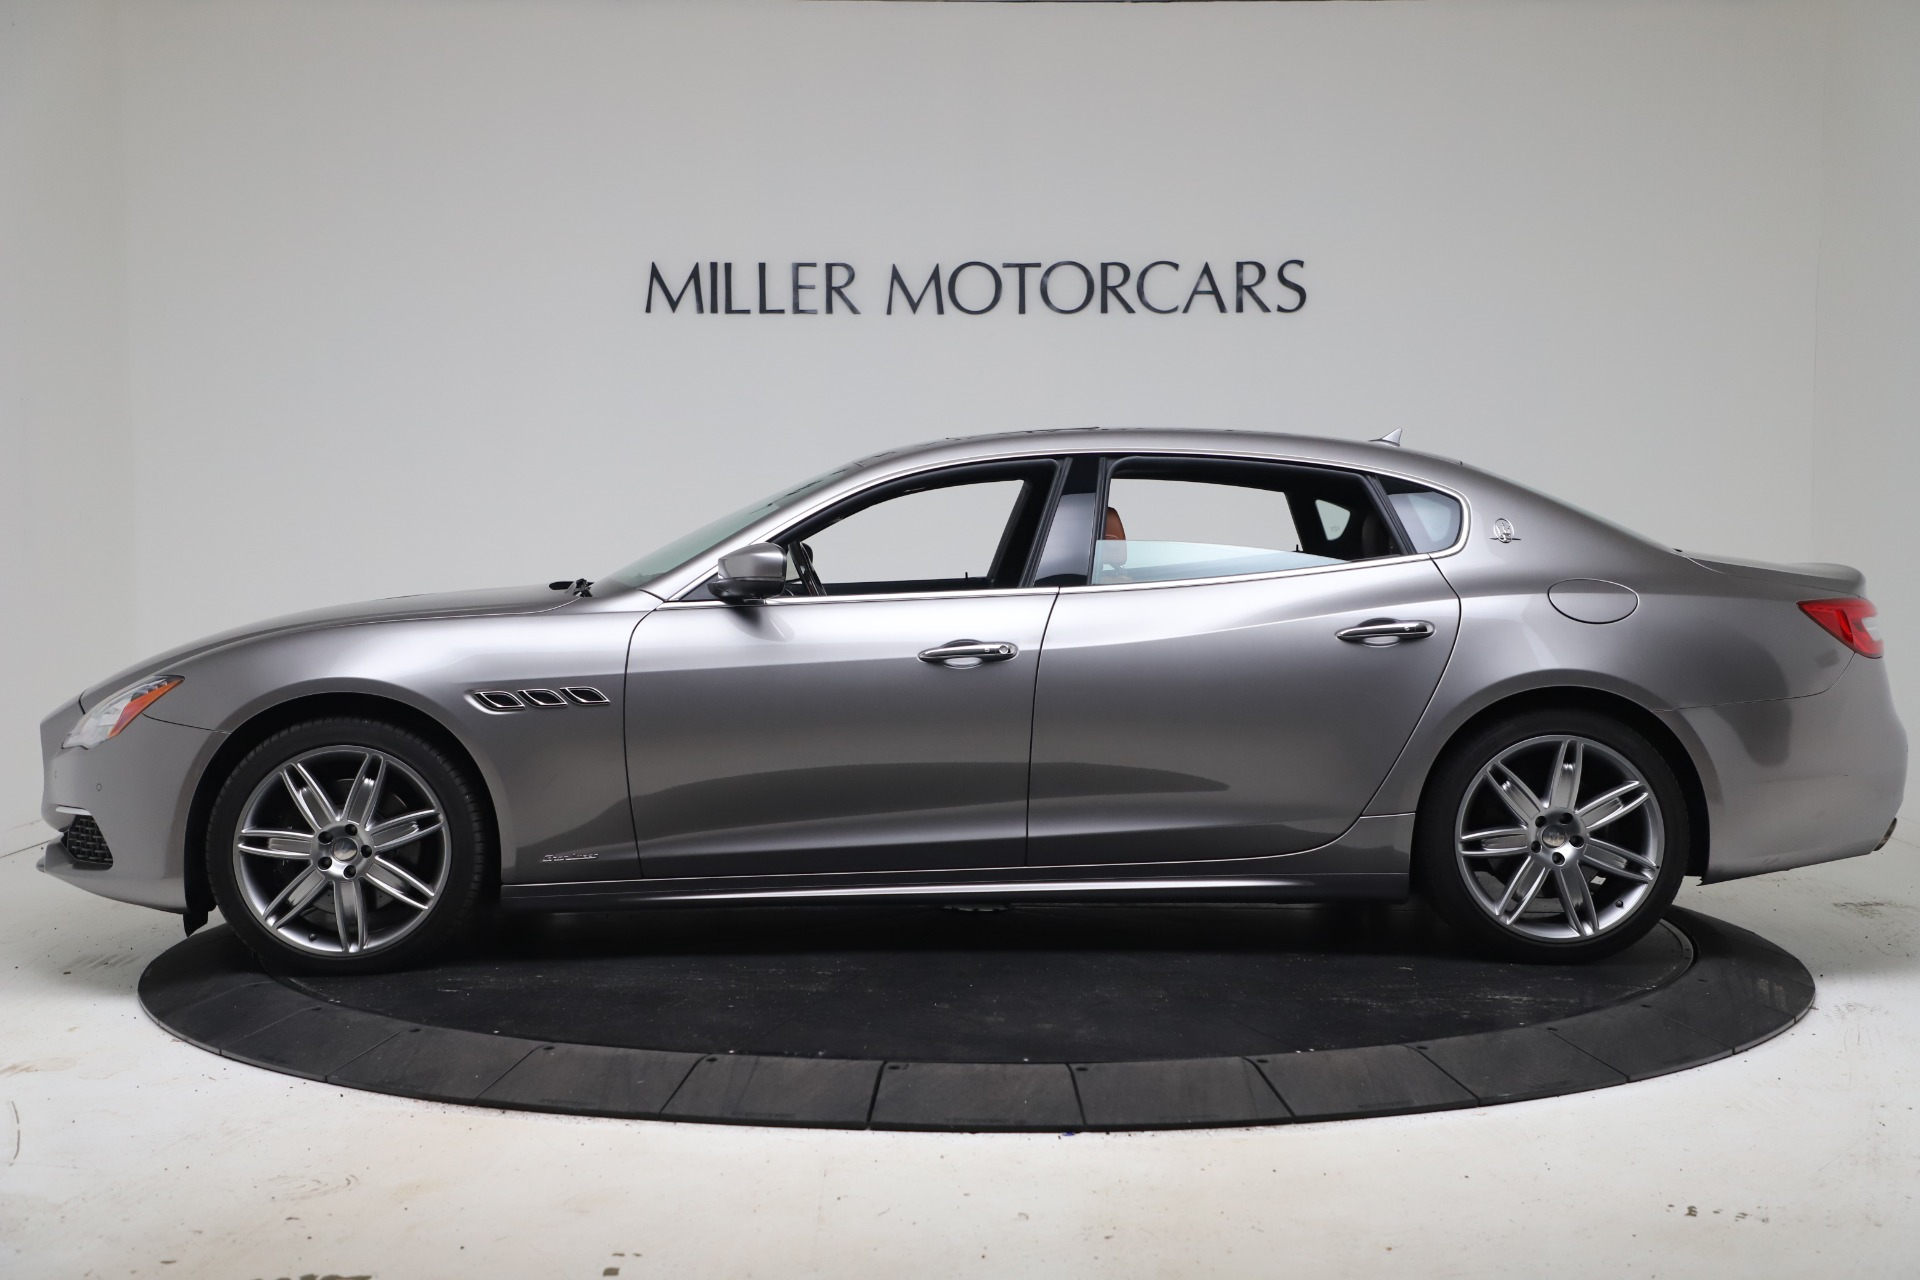 New 2017 Maserati Quattroporte SQ4 GranLusso/ Zegna For Sale In Greenwich, CT 1355_p3